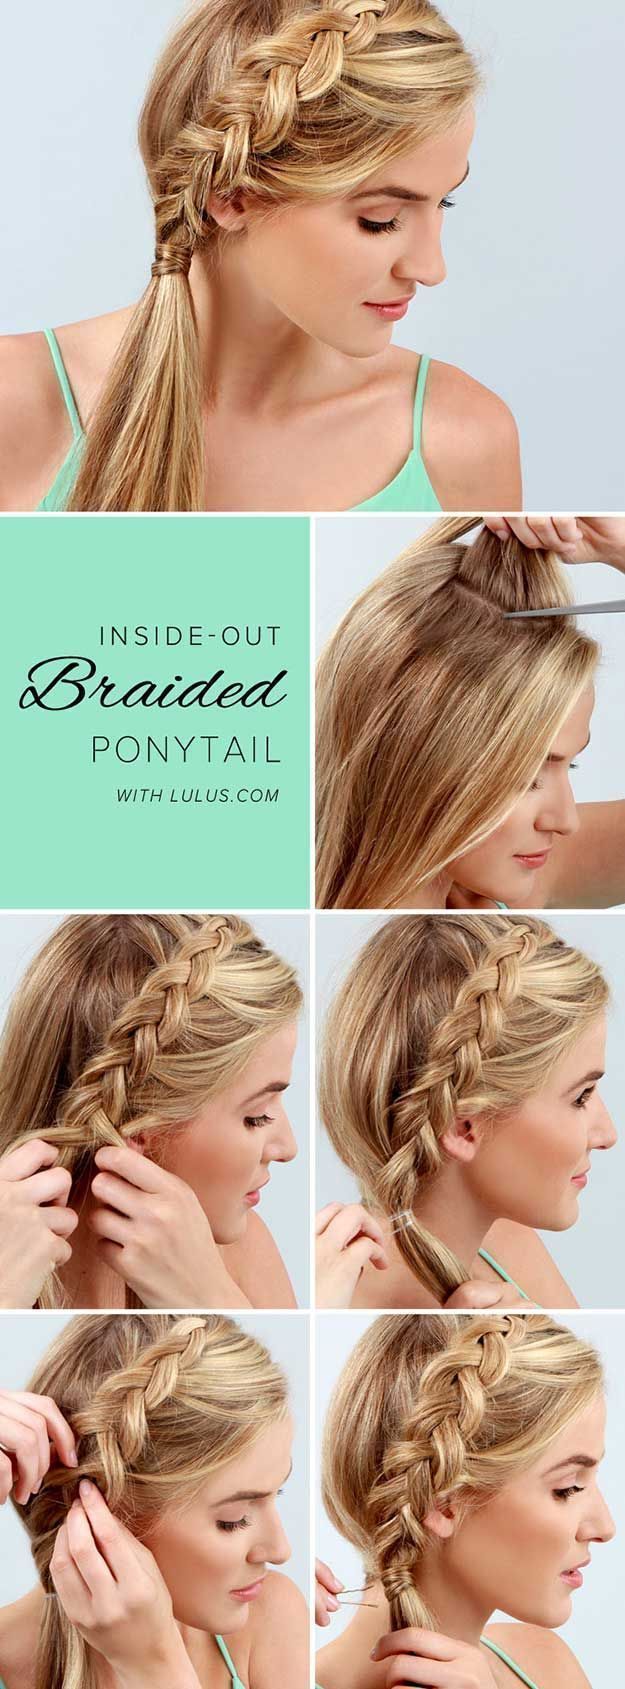 Best summer hairstyles braided ponytail step by step to hide